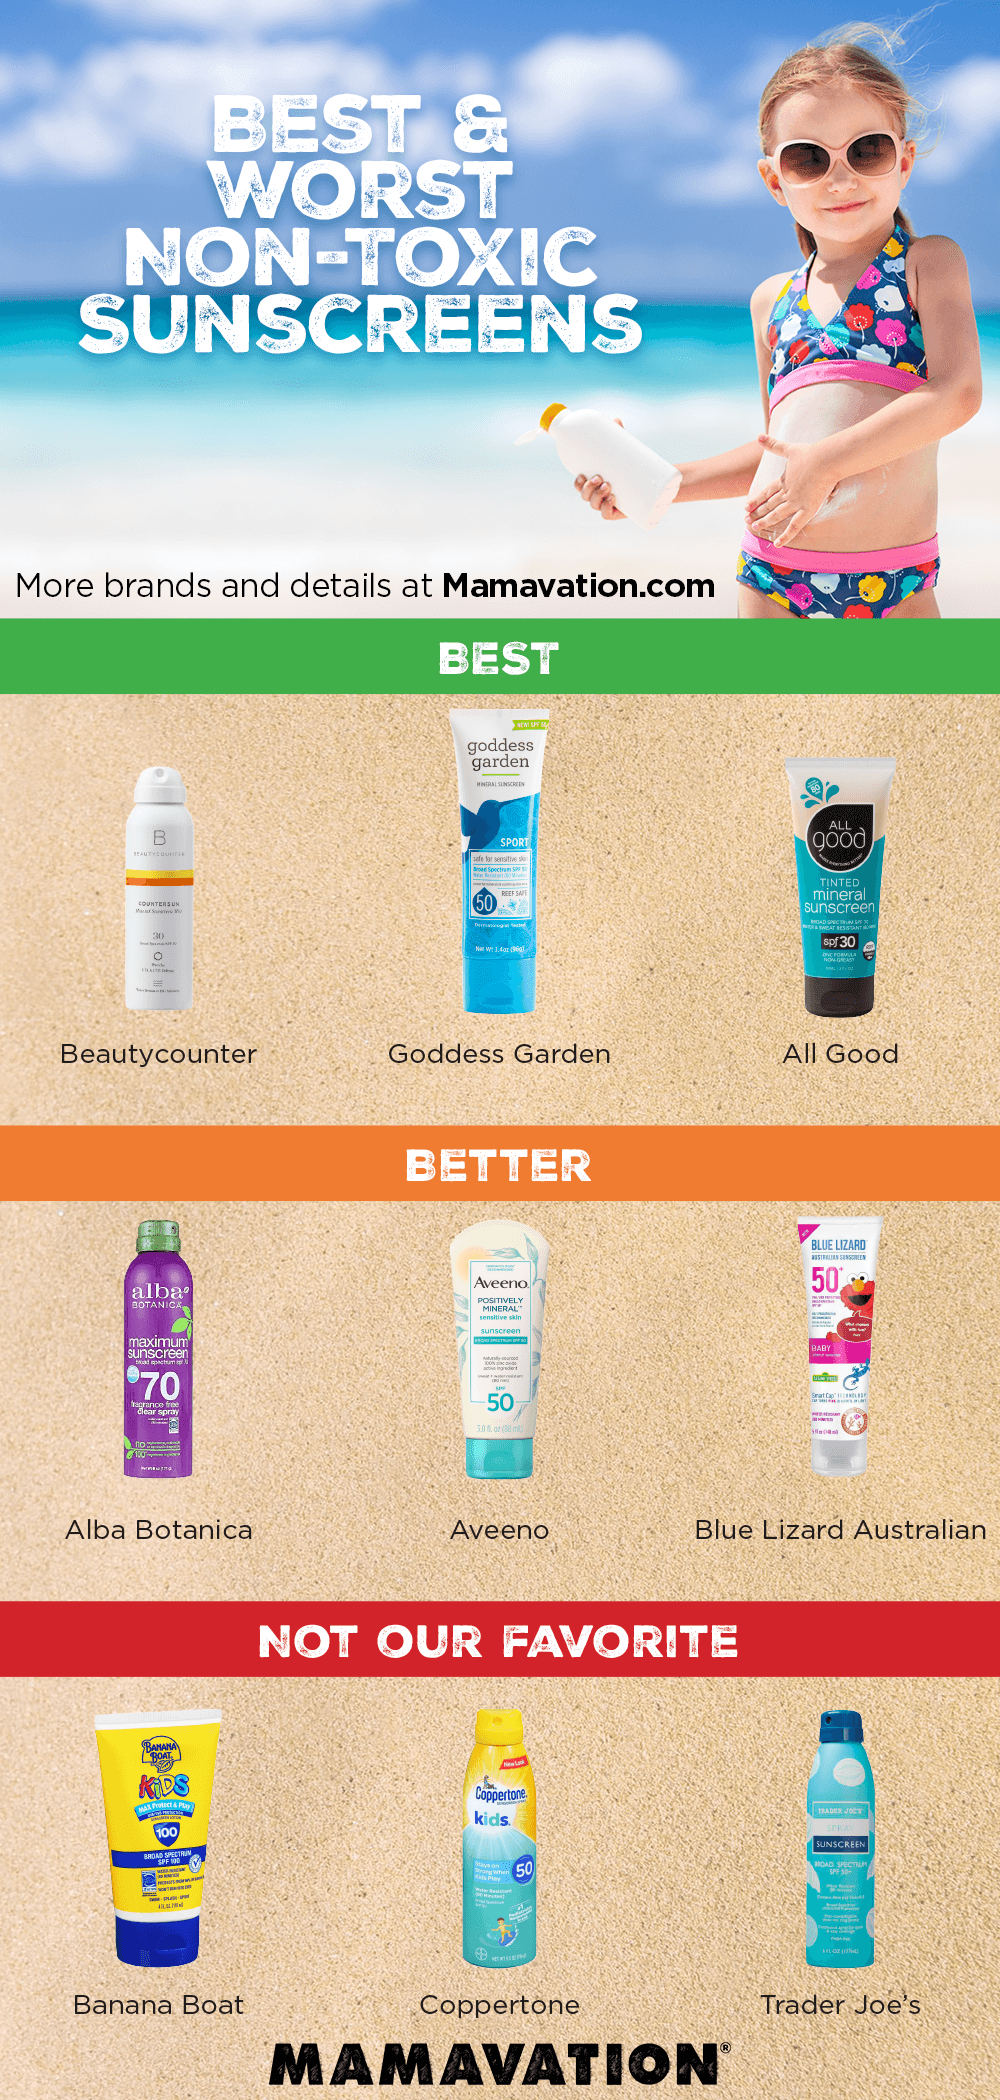 Sunscreen Chemicals Harm Children & Coral Reefs, Except For These Brands 26